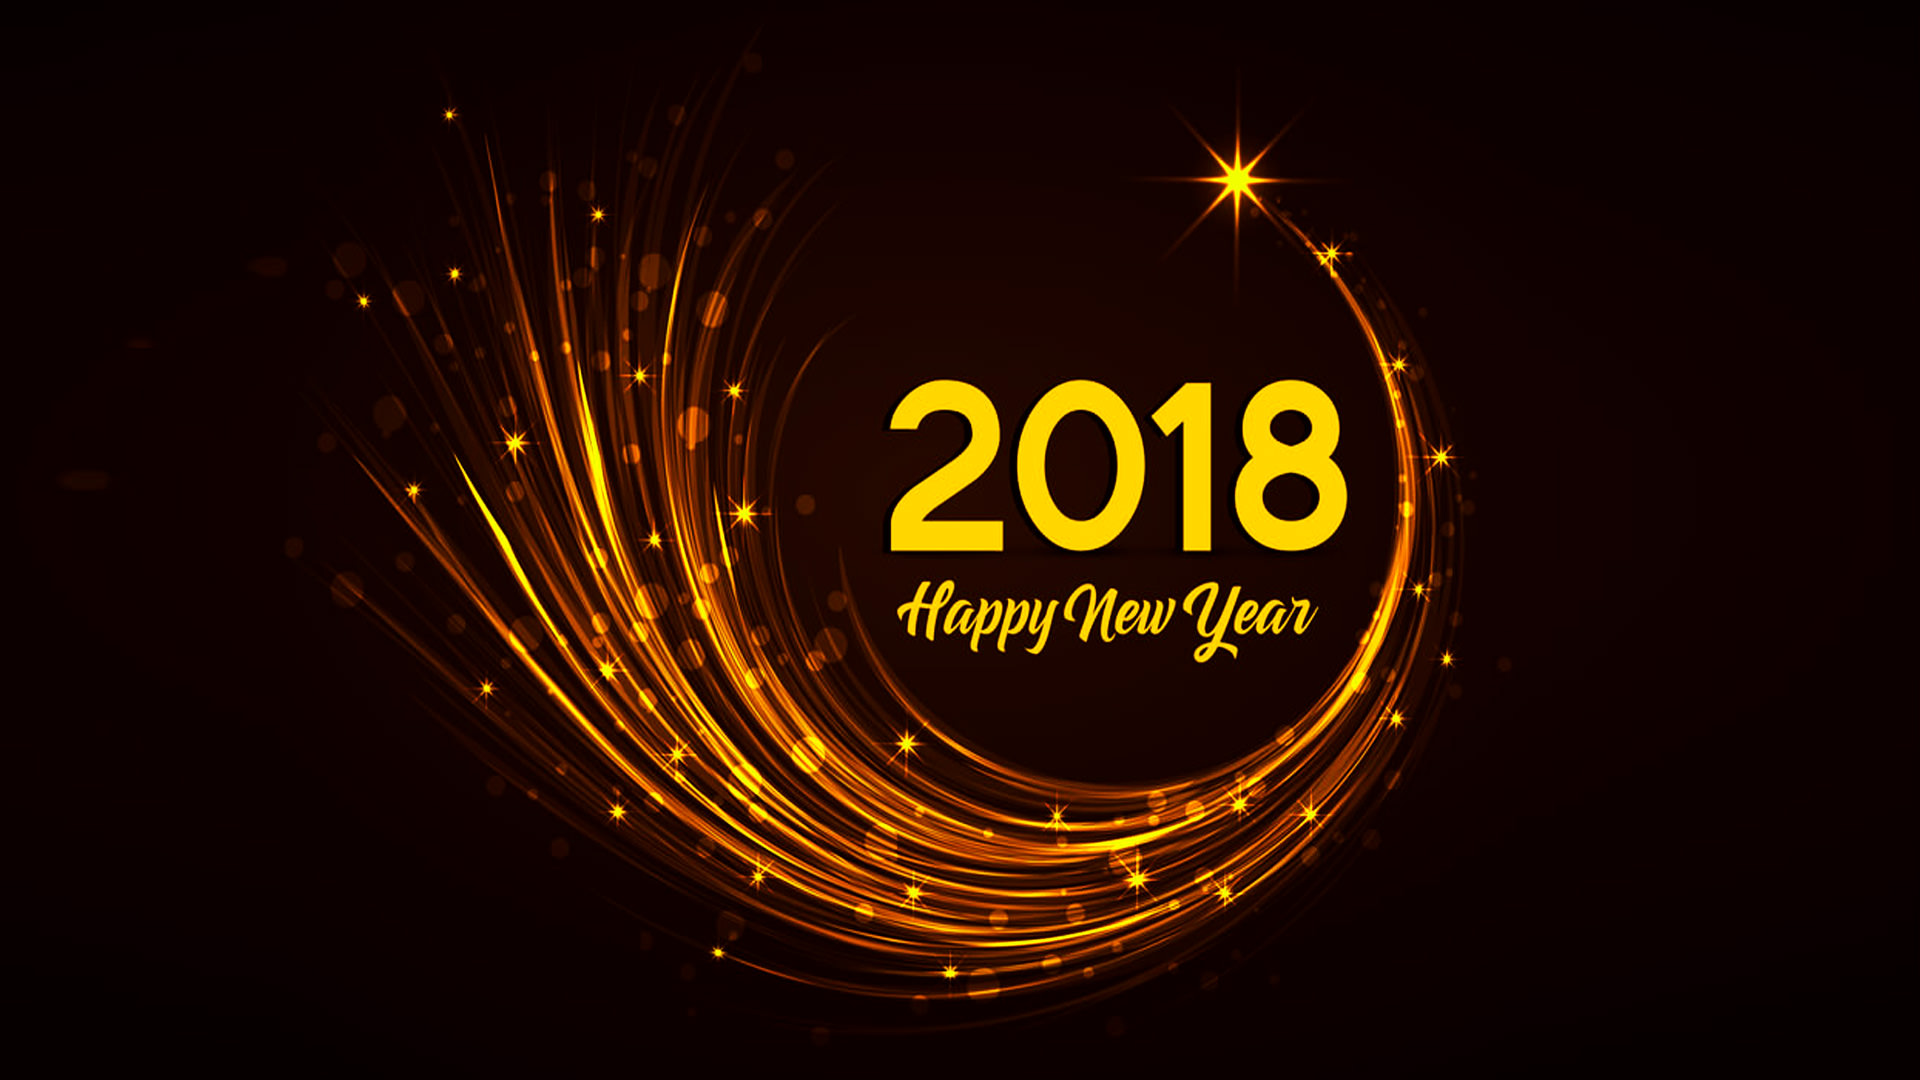 Beautiful Happy New Year 2018 Wallpaper